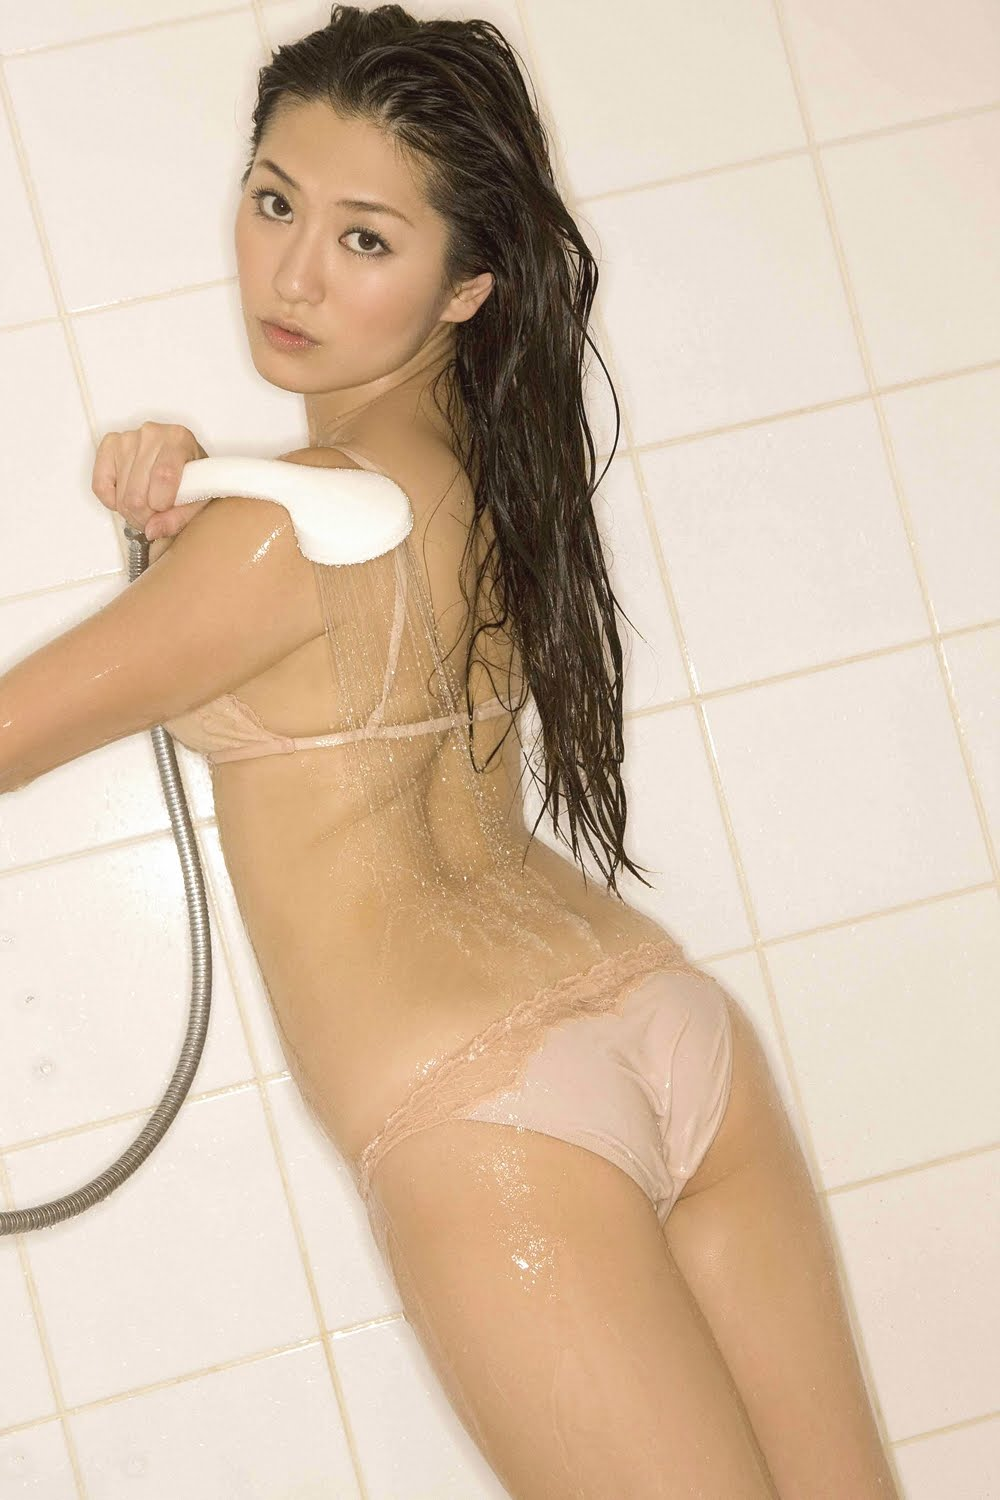 Haruna Yabuki Take A Bath Asian Girls Sexy